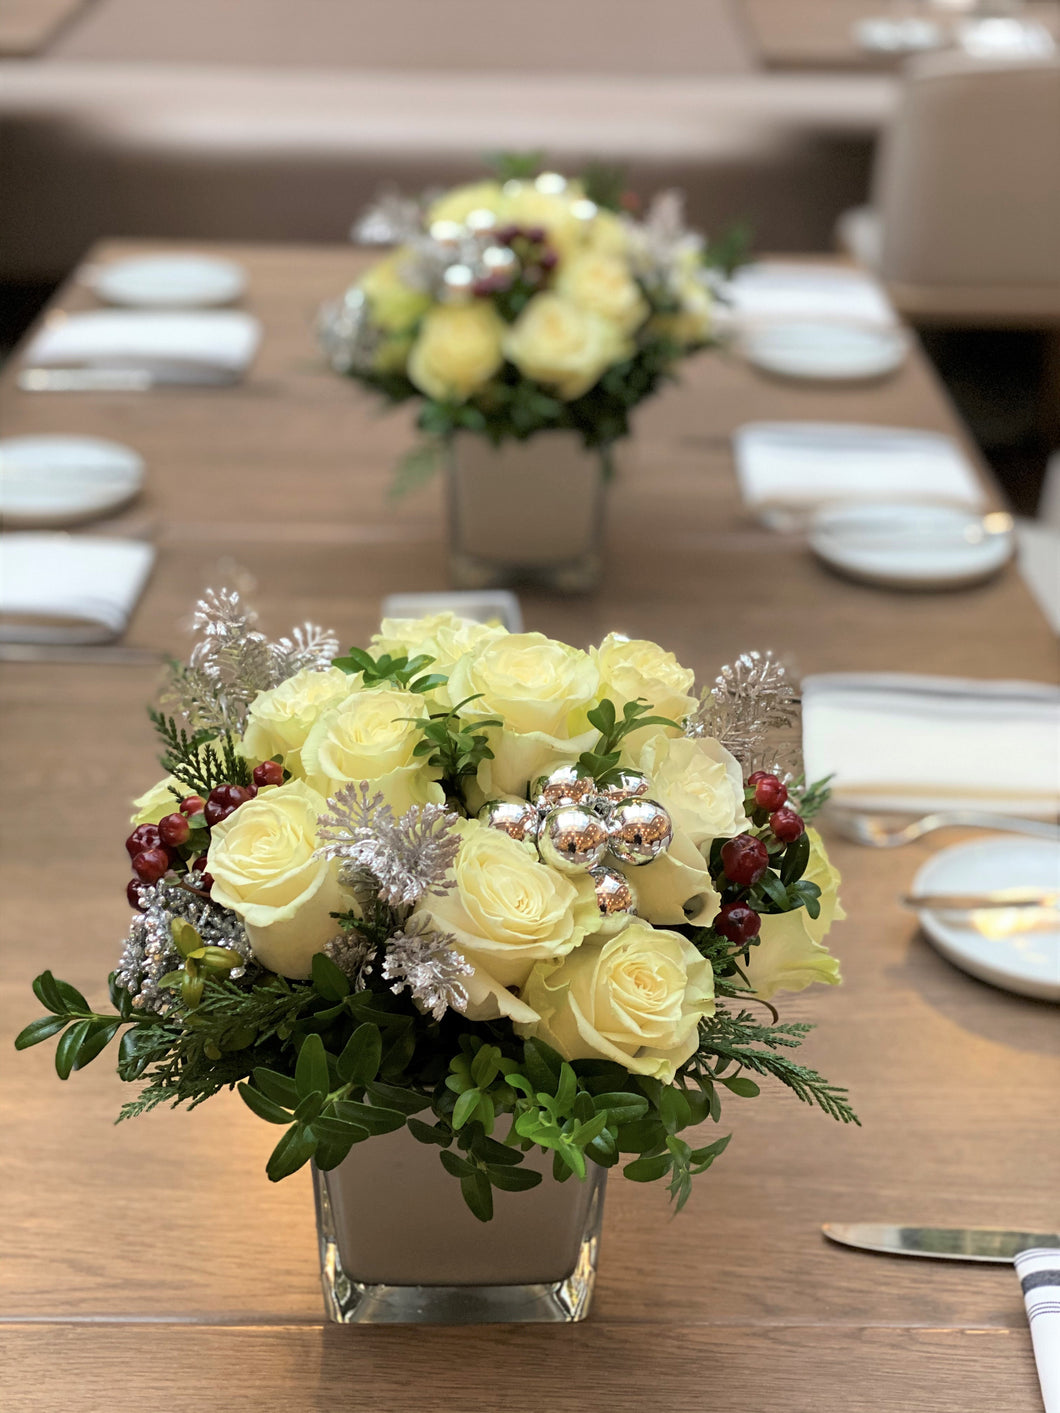 X57 - Festive White Rose Arrangement - Flowerplustoronto